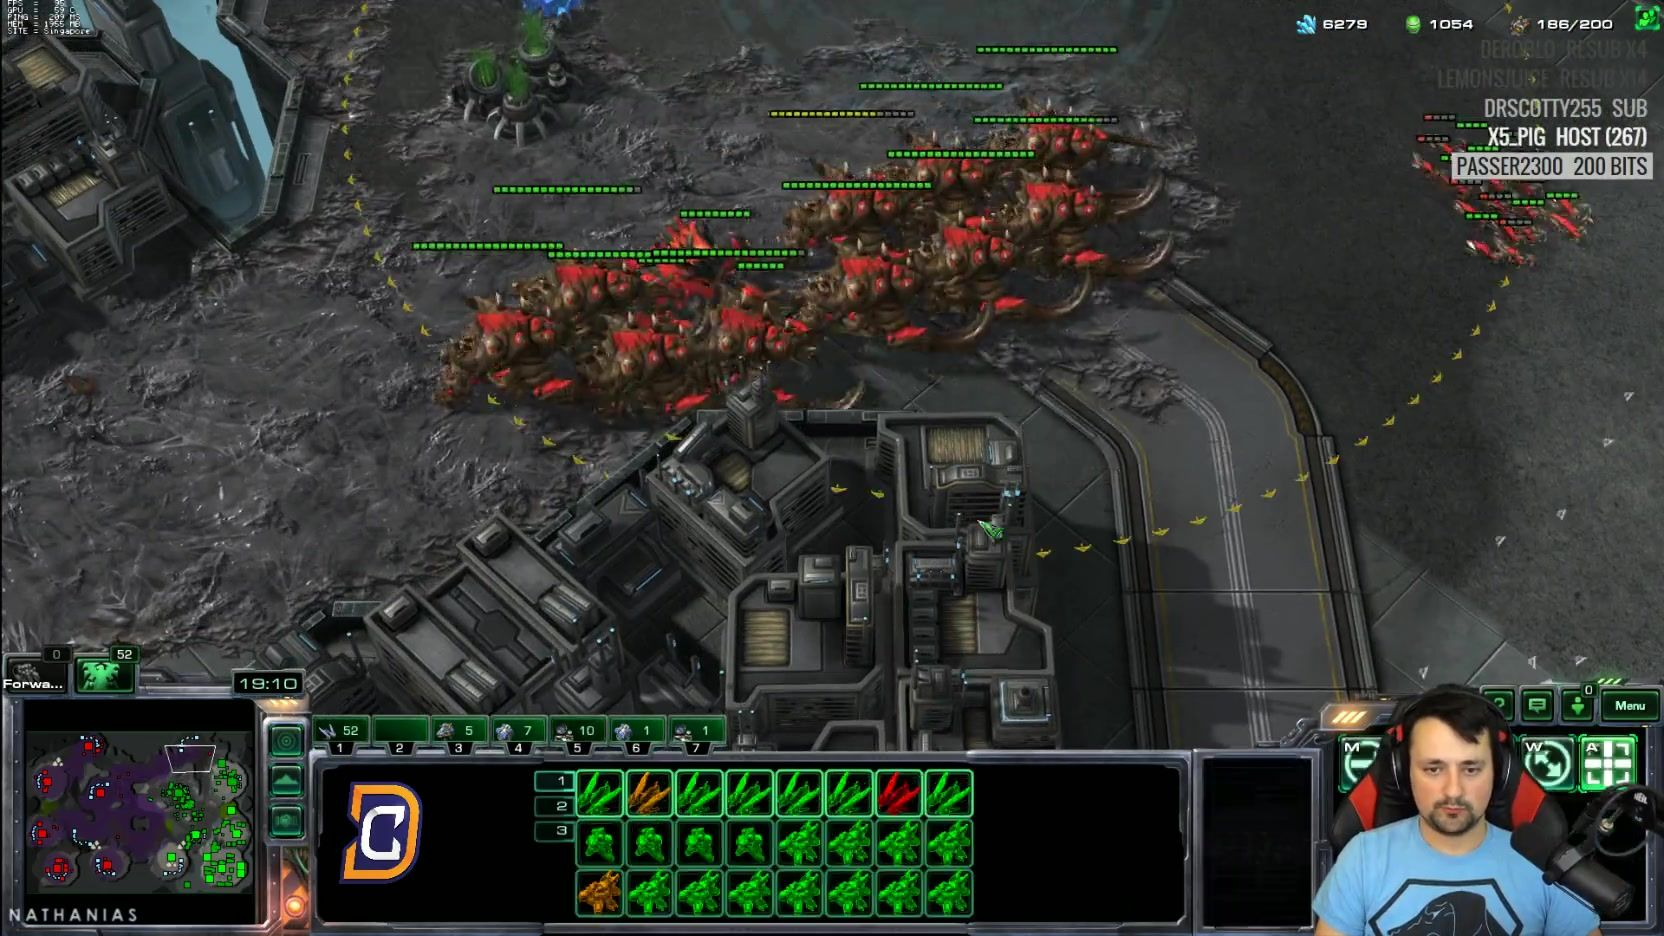 Nate with the Terran force fields #games #Starcraft #Starcraft2 #SC2 #gamingnews #blizzard